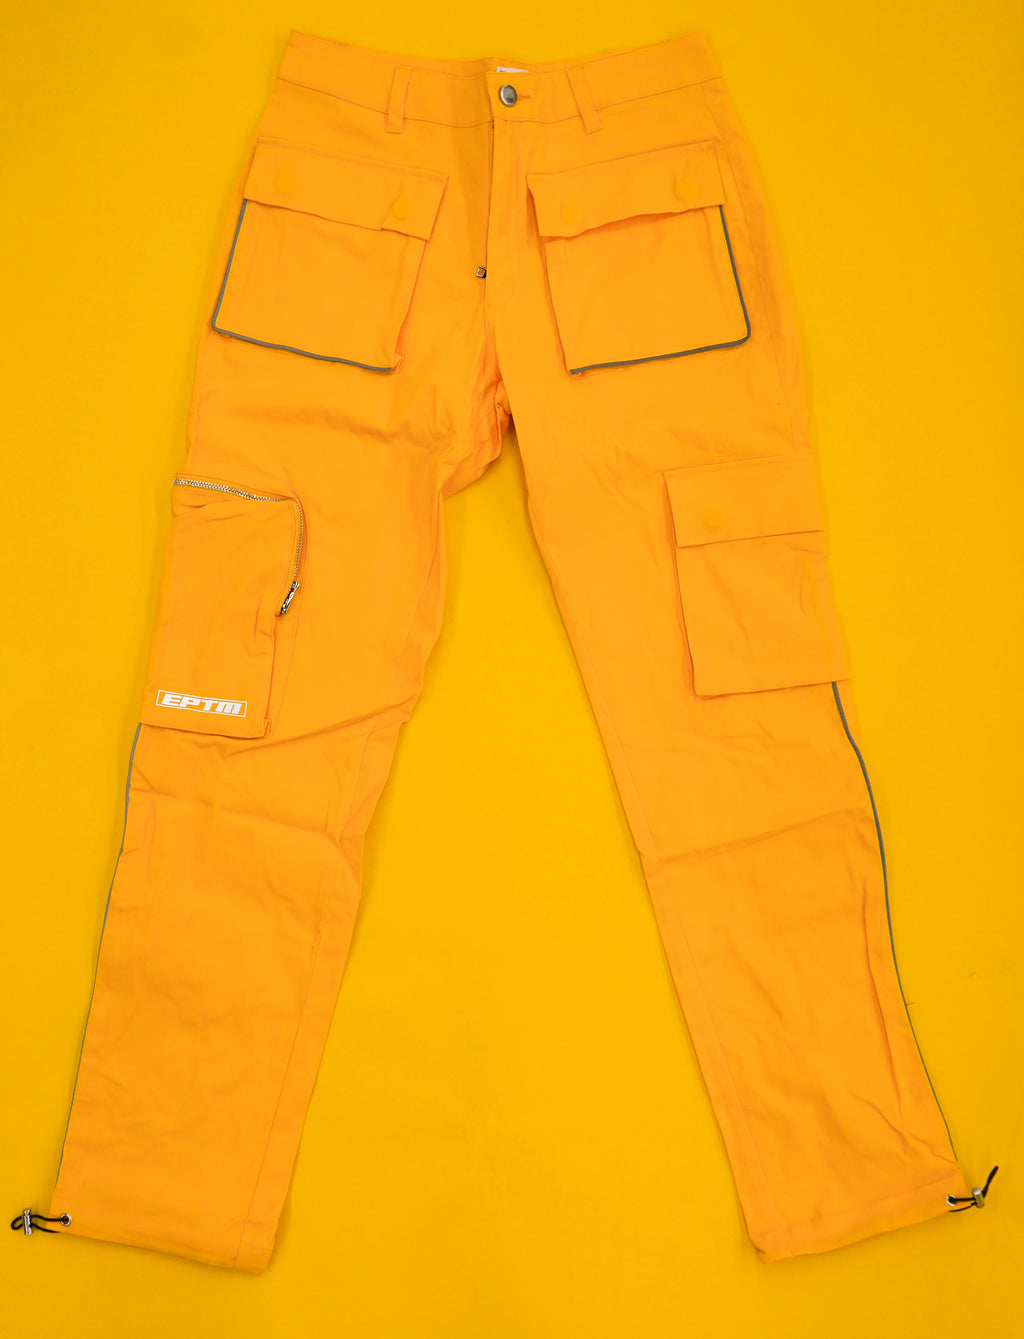 3M Piping Cargo Pants